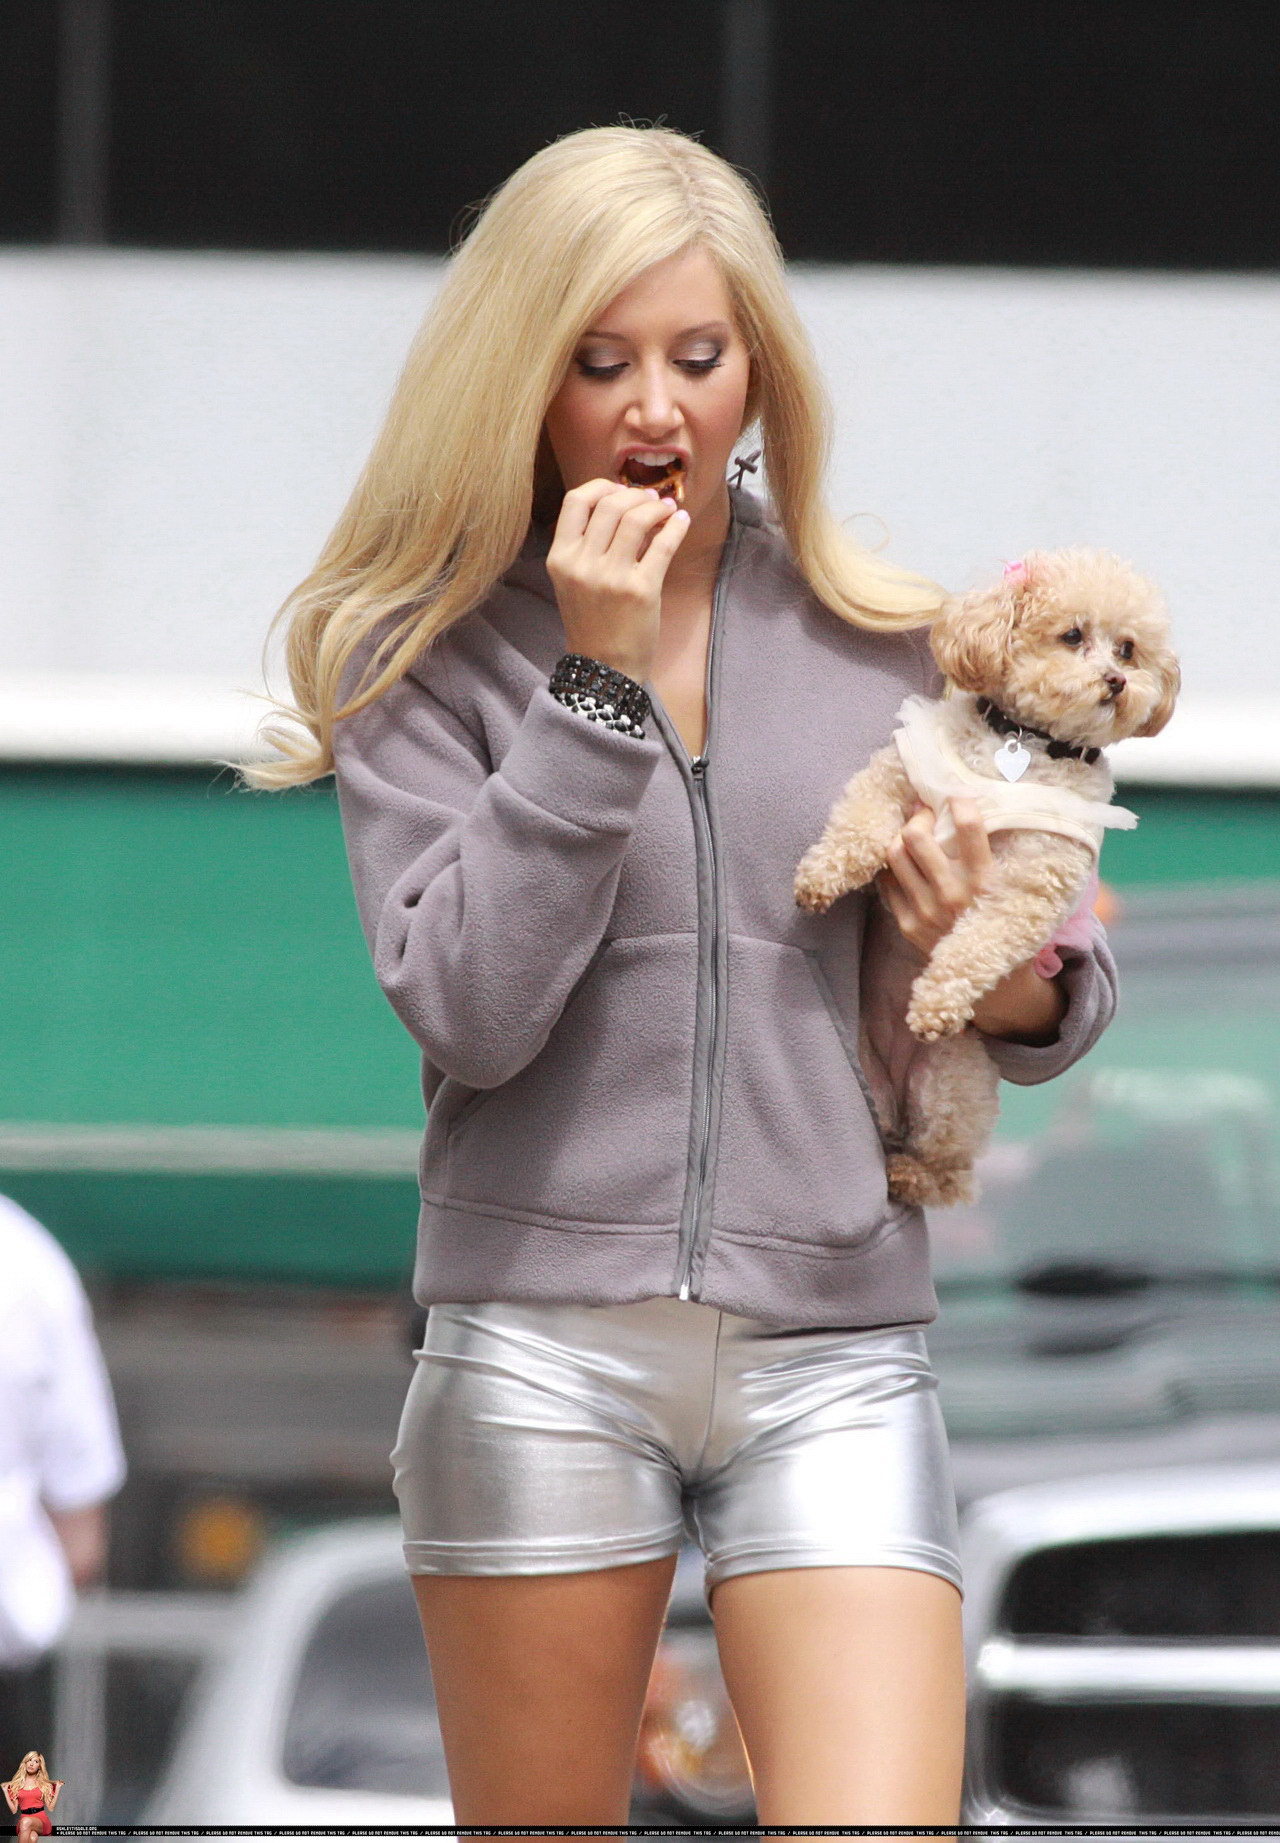 ashley tisdale hot and sexy pussy pics